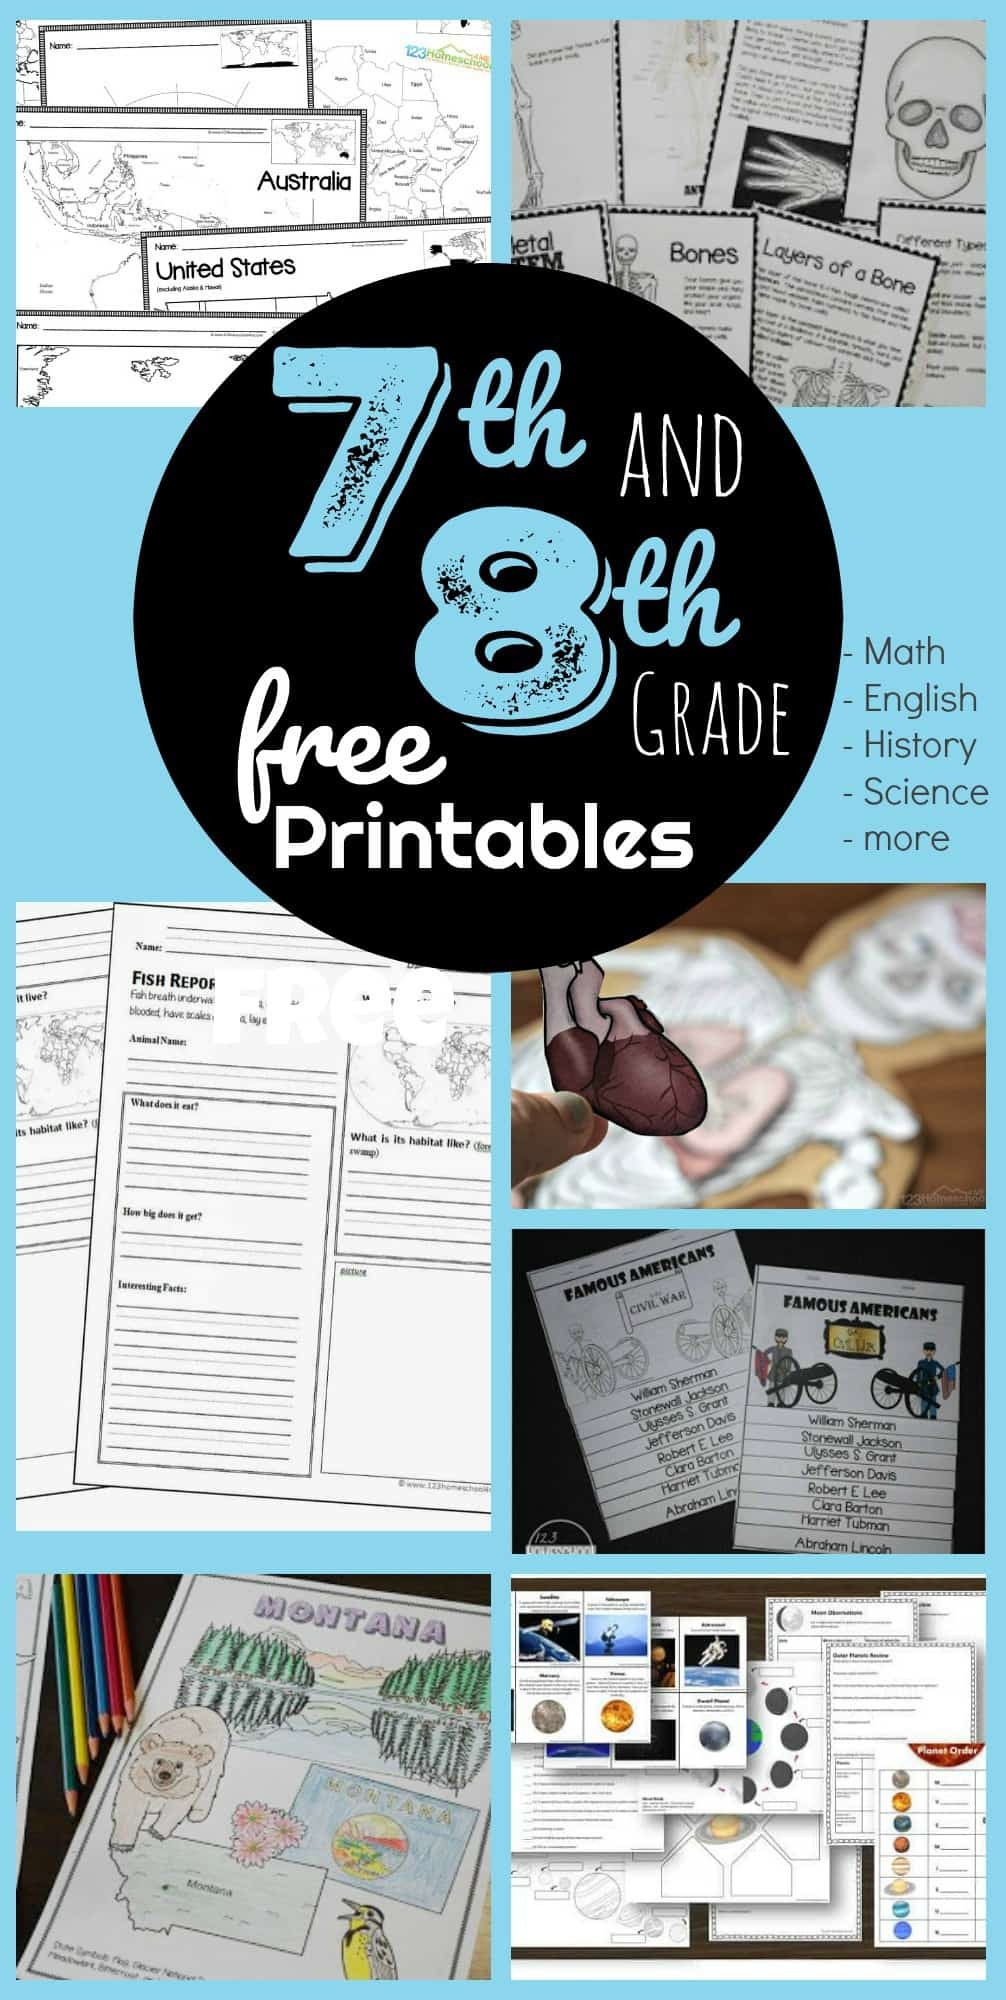 American History Worksheets 8th Grade Free 7th & 8th Grade Worksheets